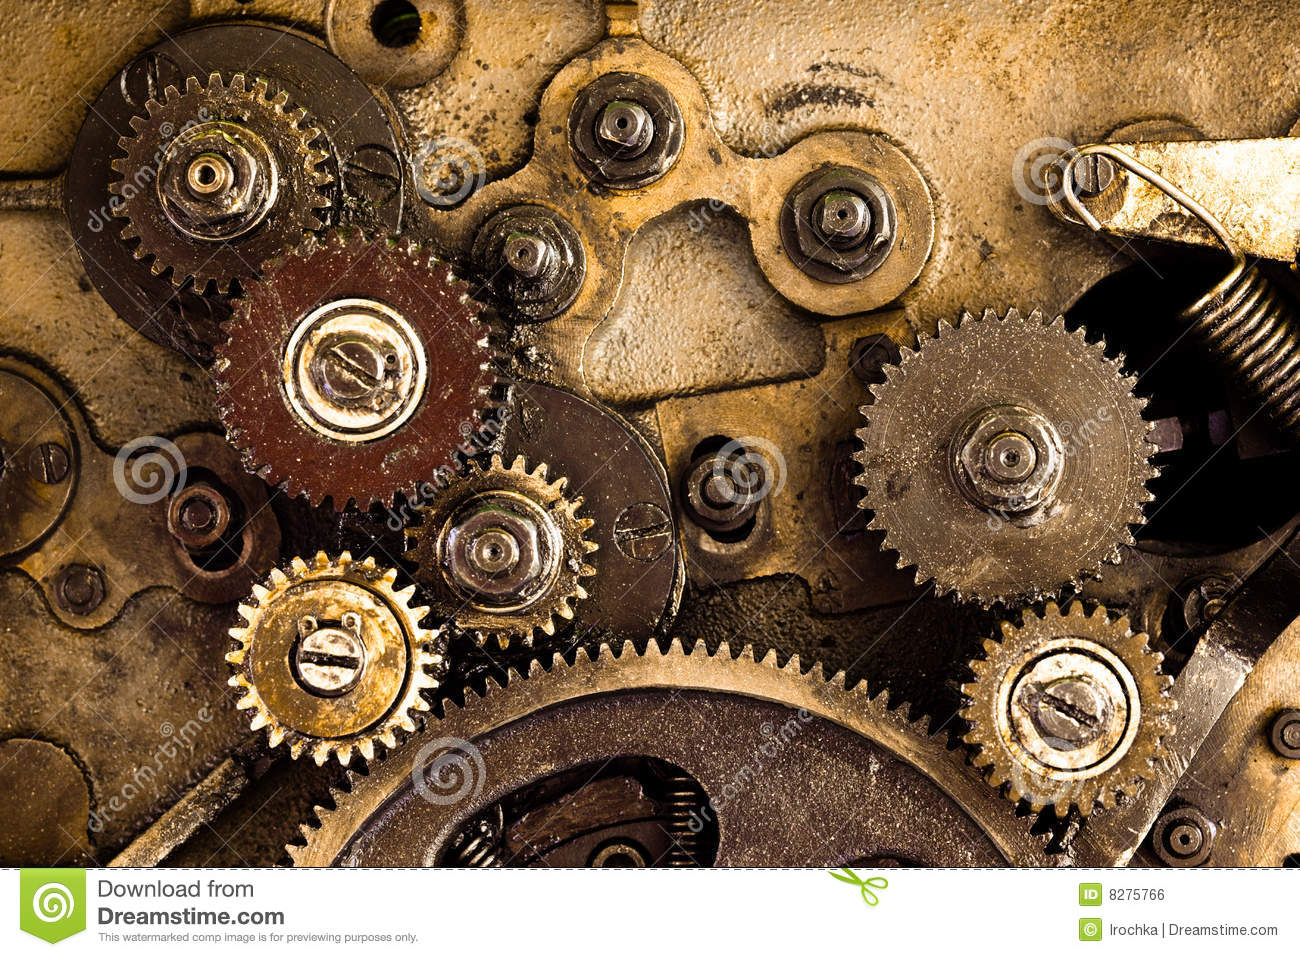 Gear Background Royalty Free Stock Image - Image: 8275766